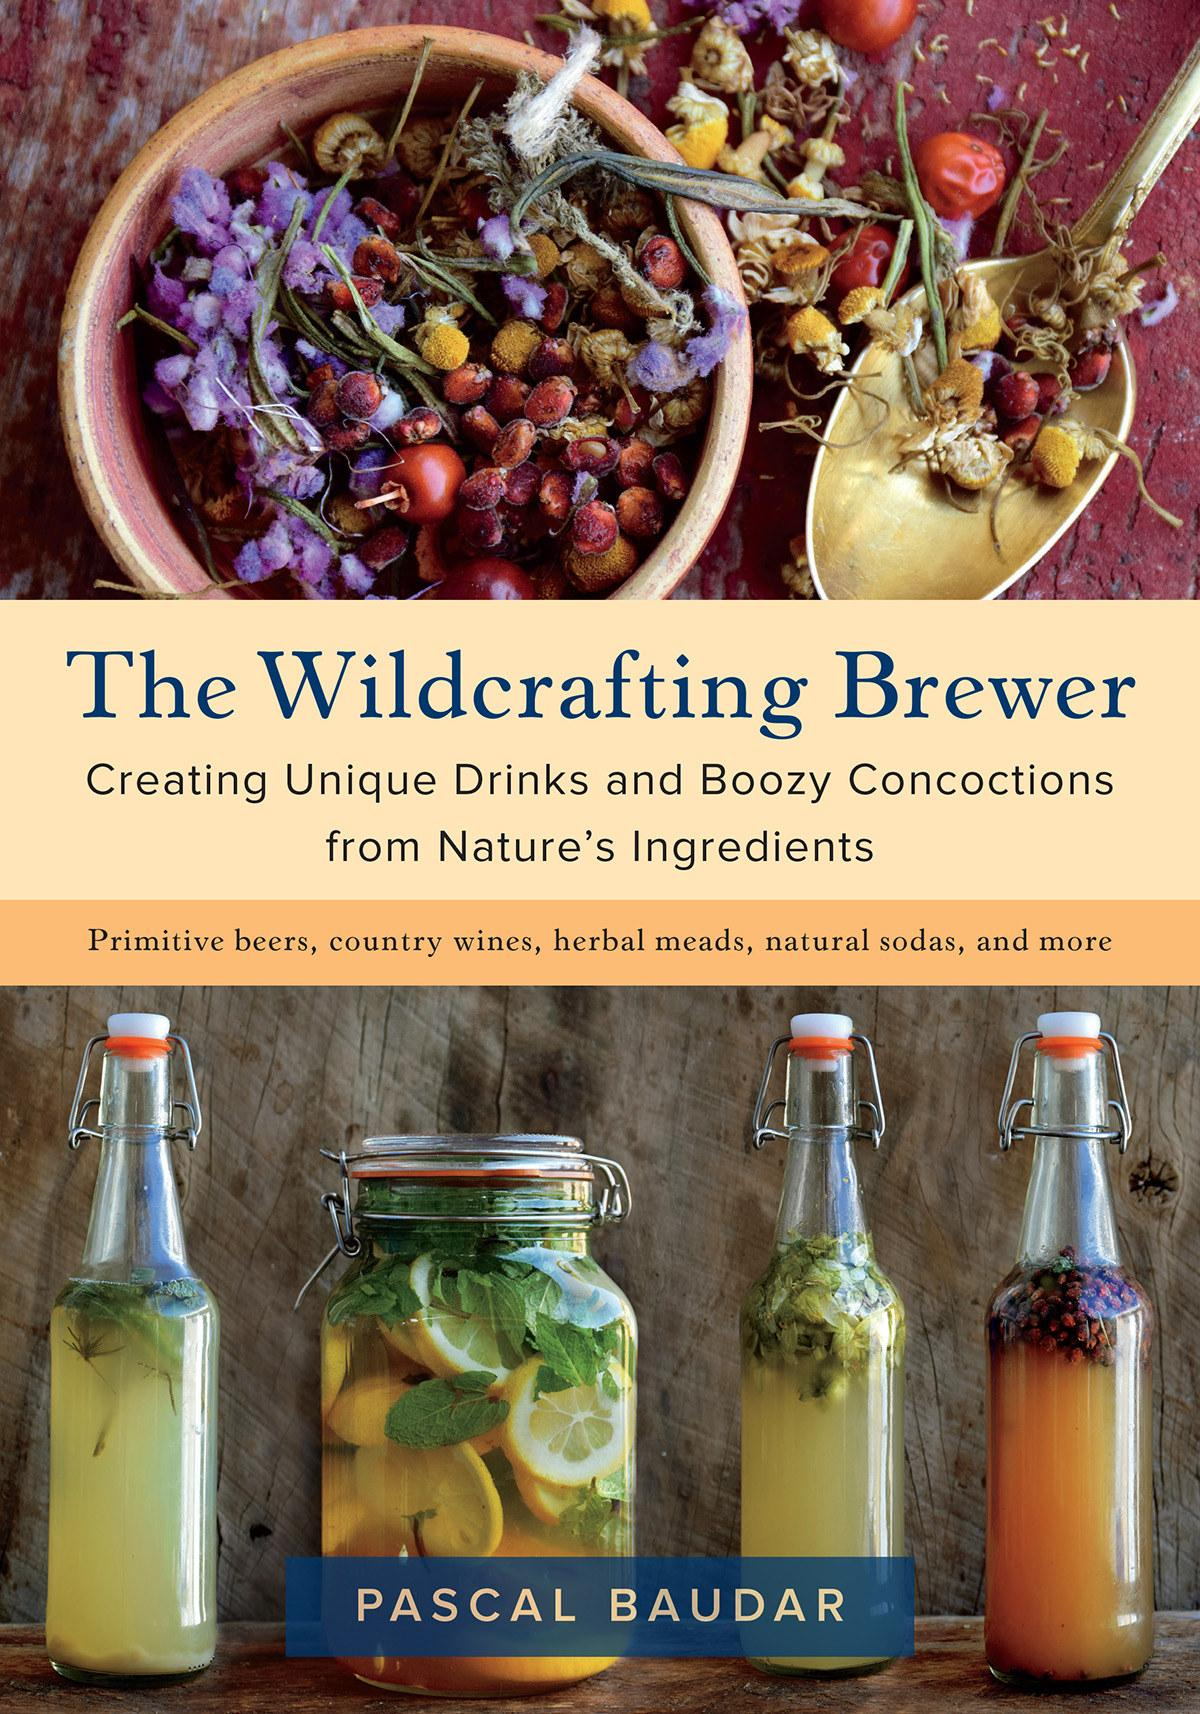 Brewing Wild Beers with Local Plants: A Workshop with Pascal Baudar